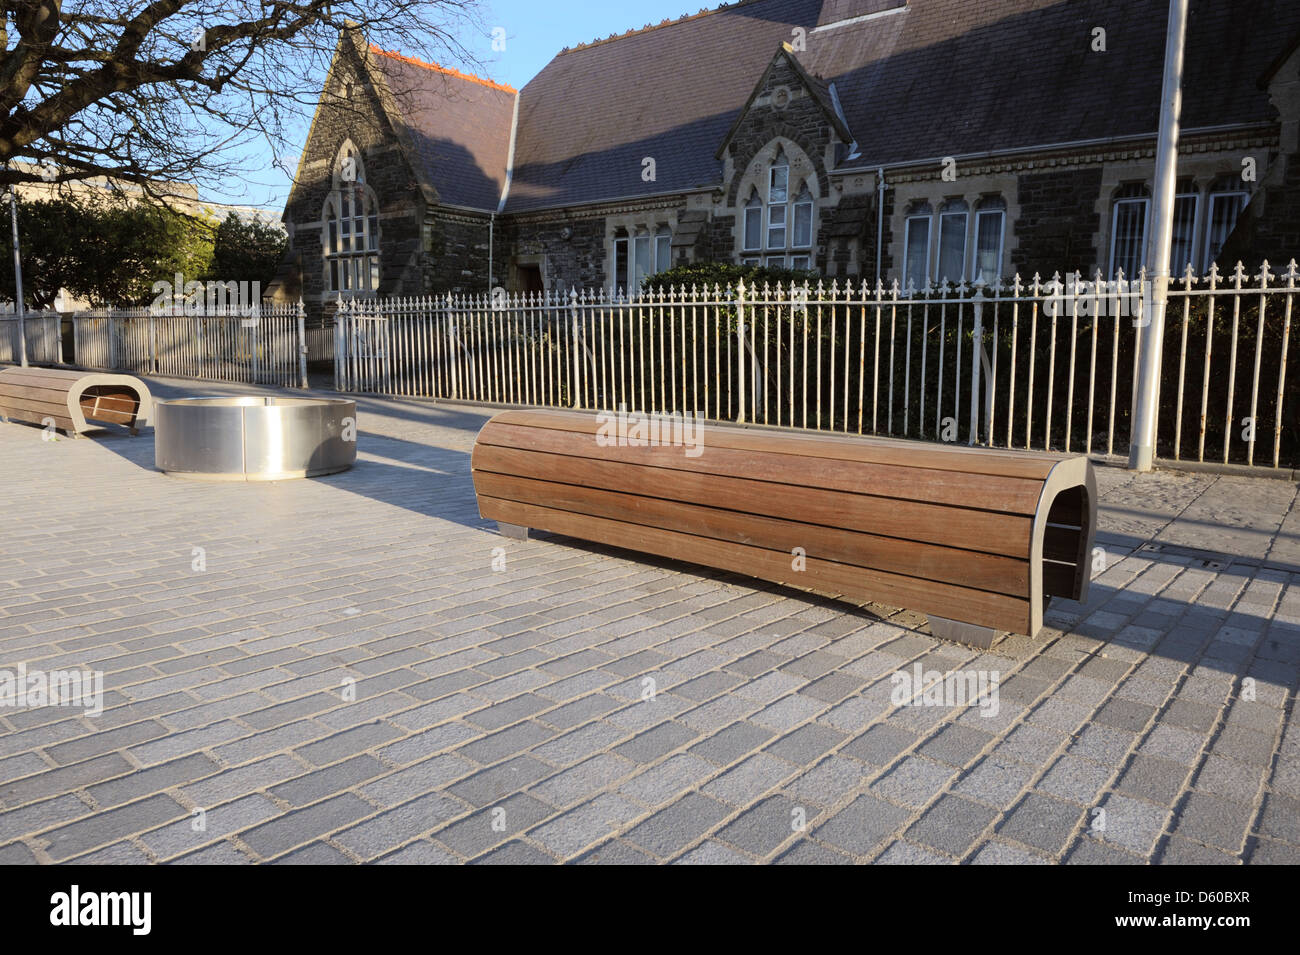 New steel and wood street furniture, Aberystwyth, Wales, UK - Stock Image